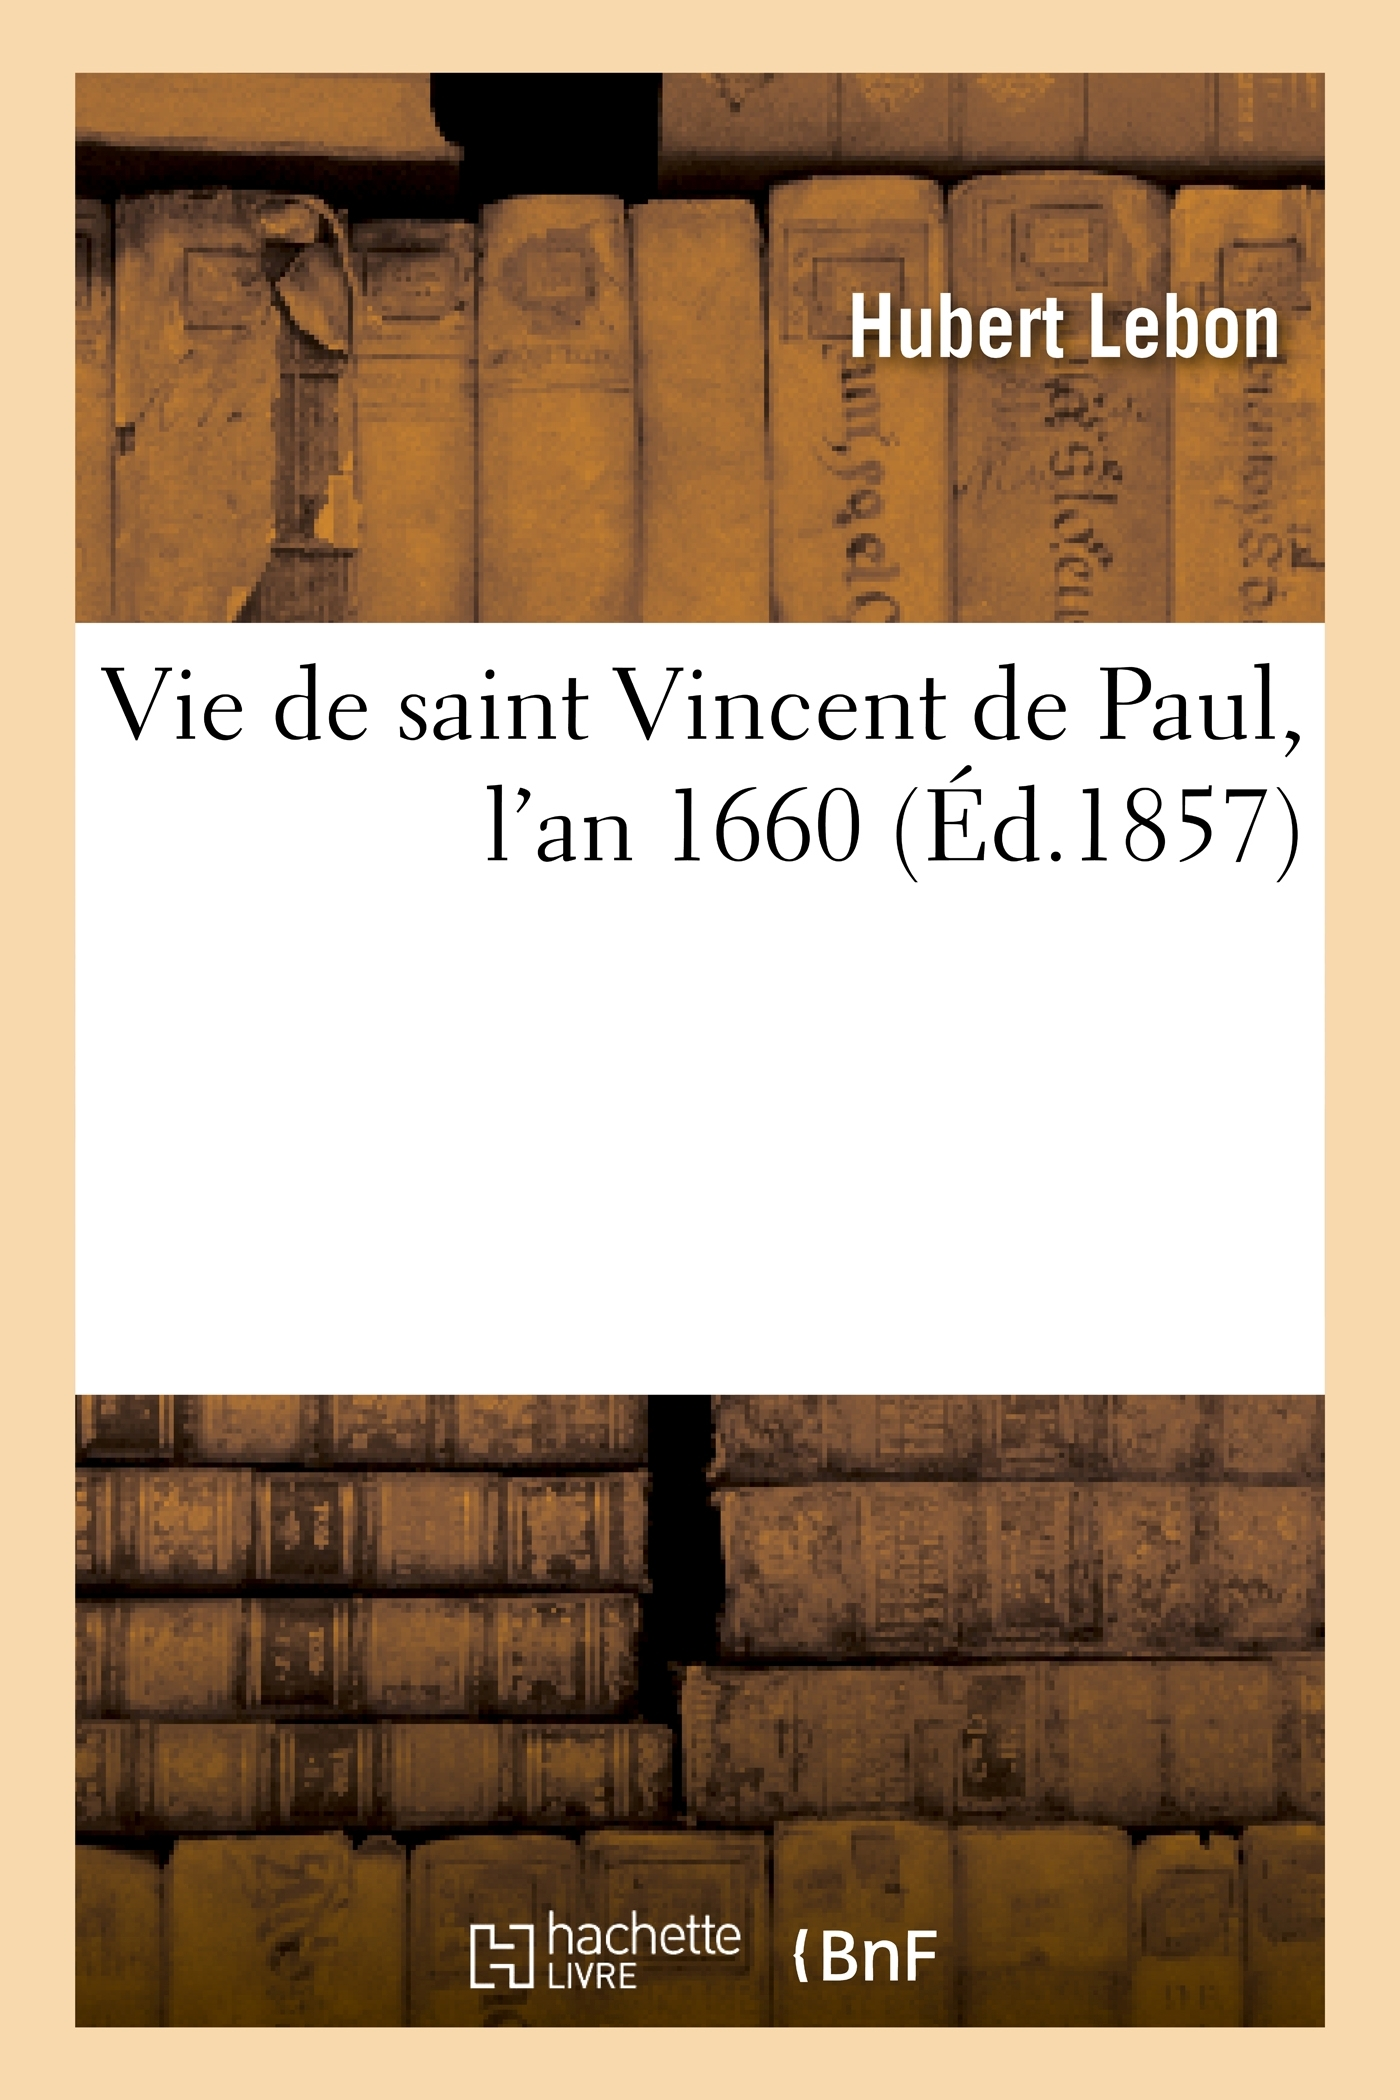 VIE DE SAINT VINCENT DE PAUL, L'AN 1660 (ED.1857)